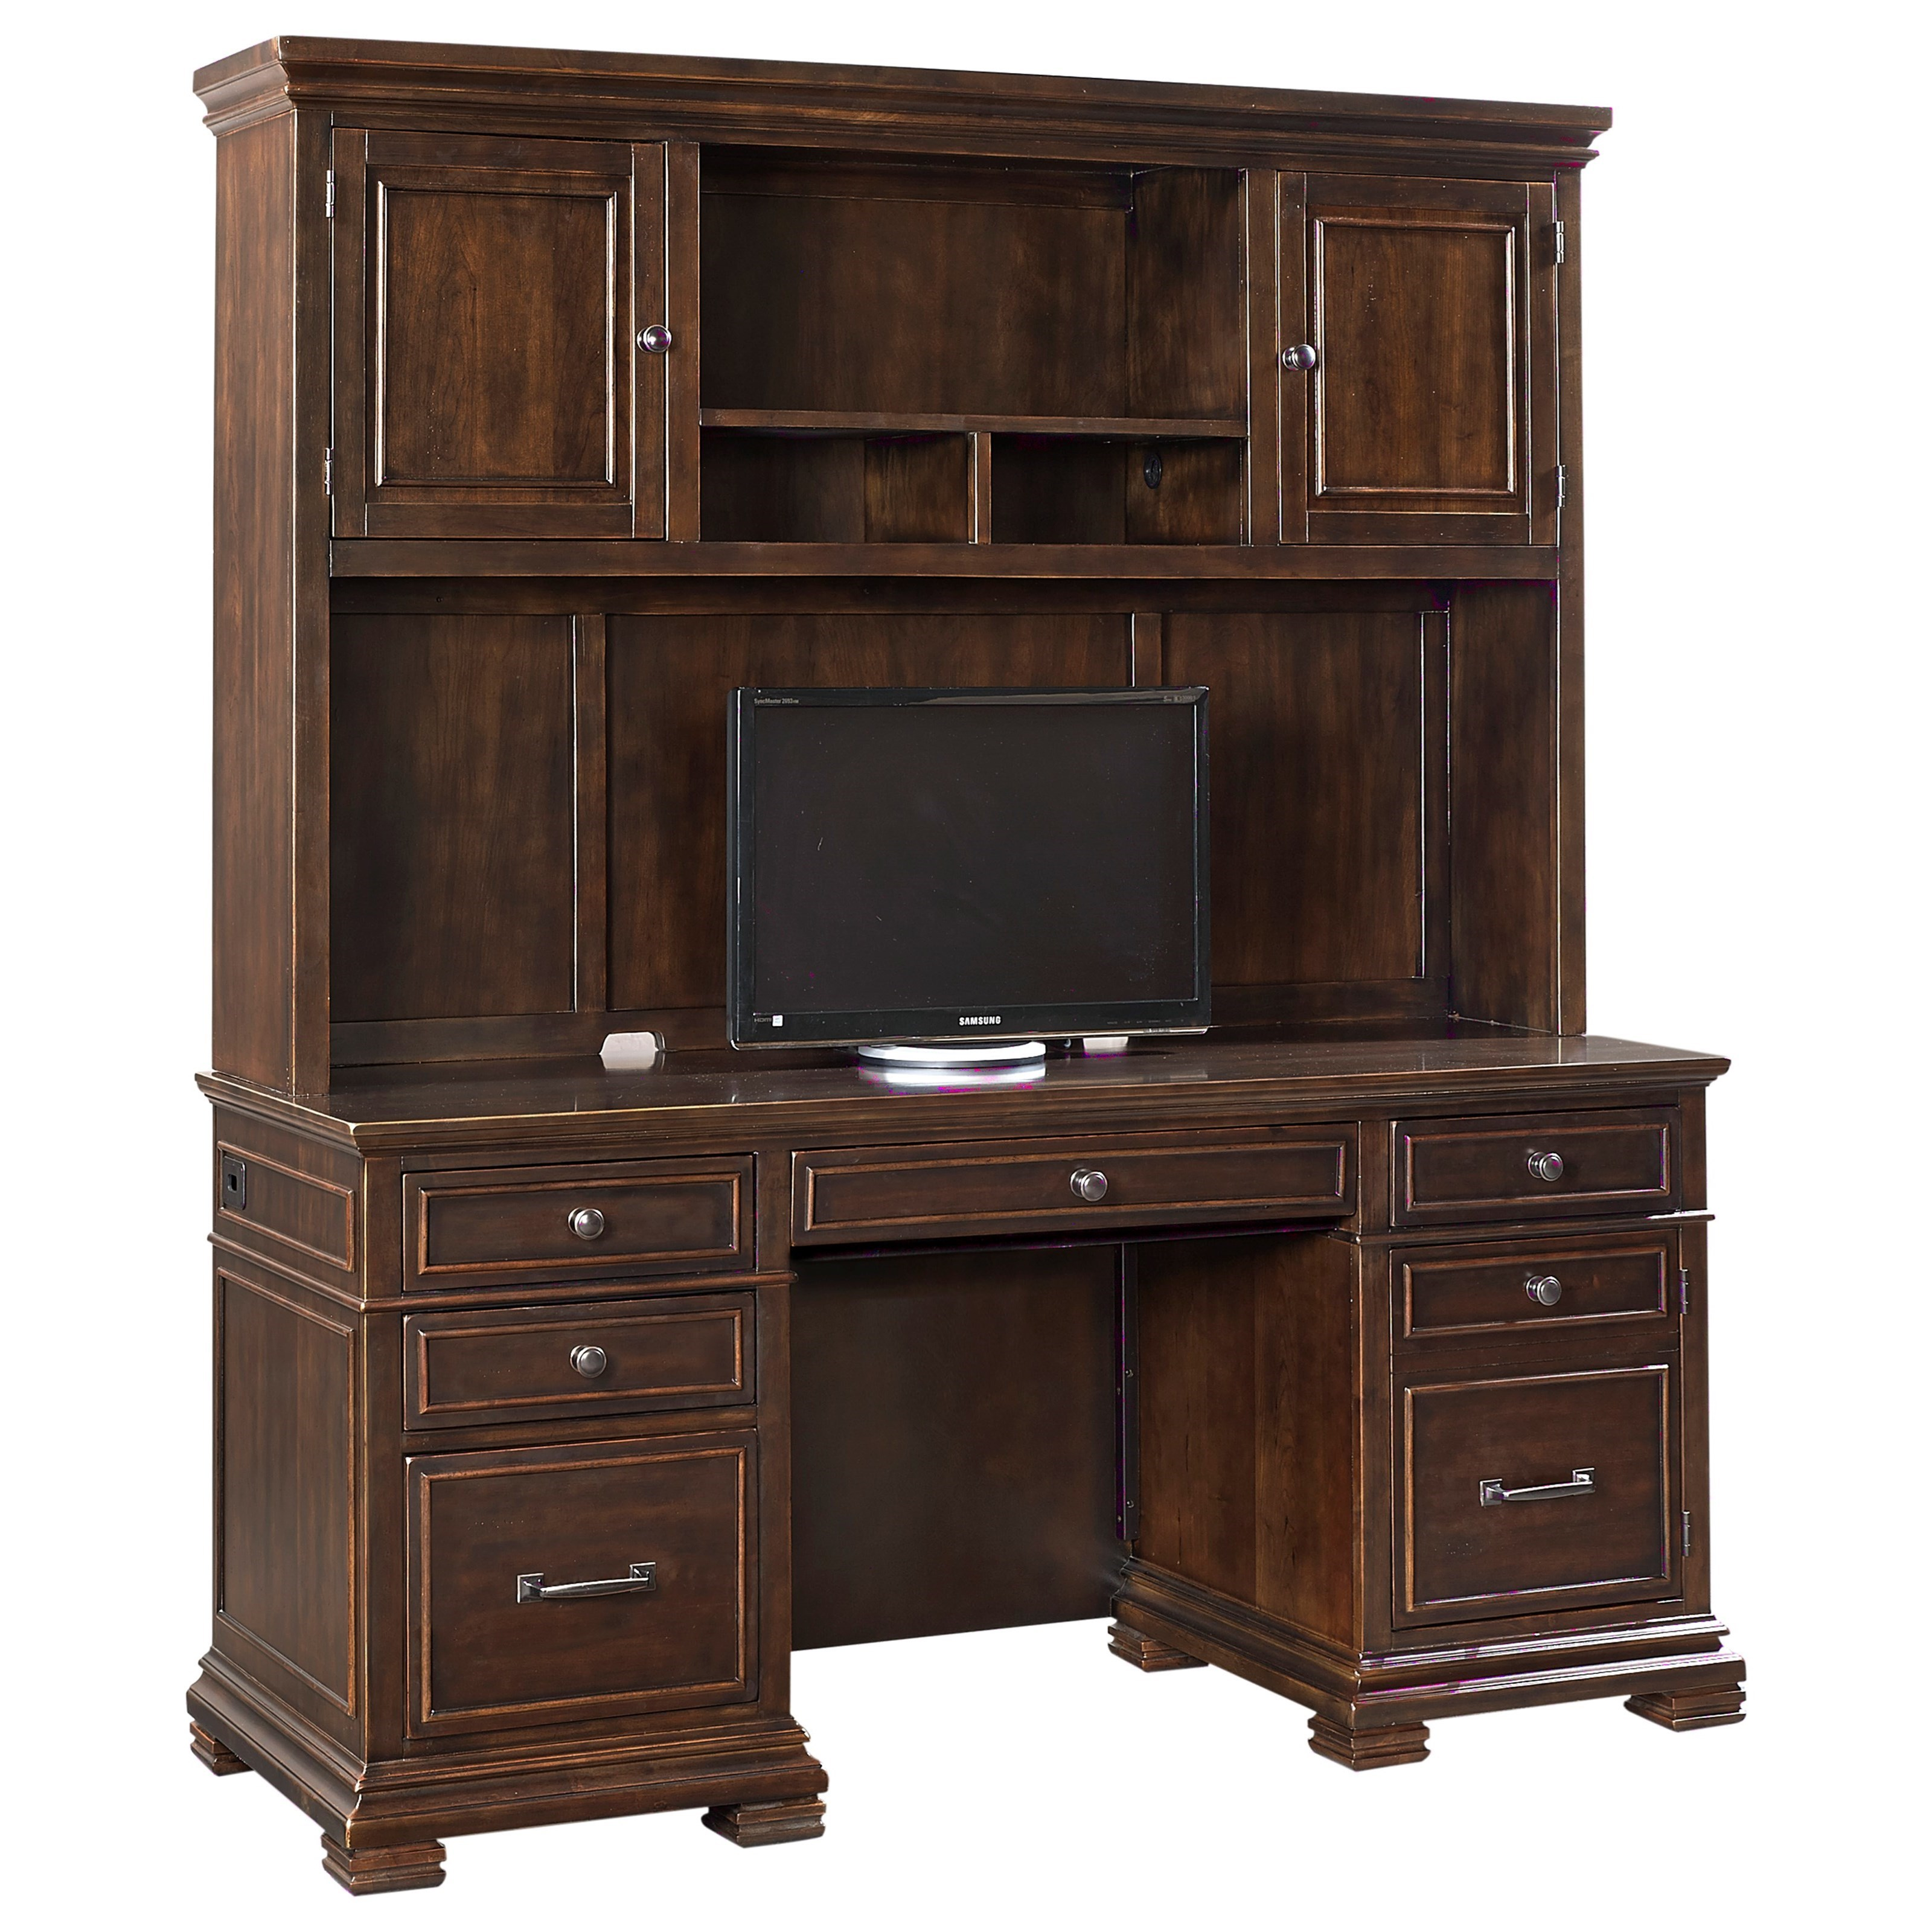 Birmingham Birmingham Credenza with Hutch by Aspenhome at Morris Home